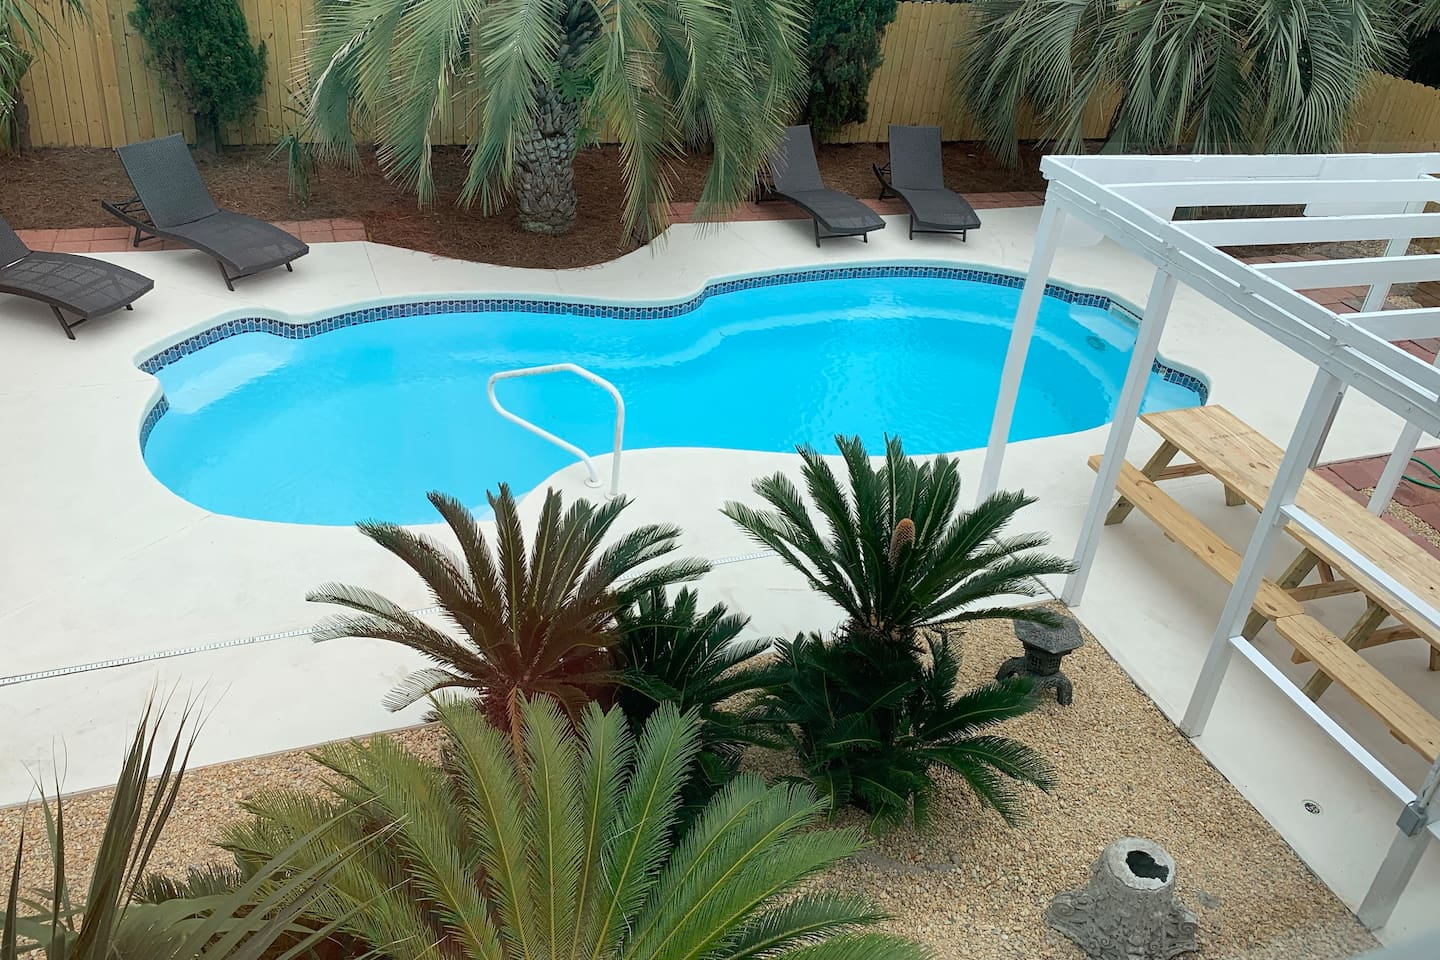 Surfs up? Not a problem! Enjoy a private pool any time of the day!